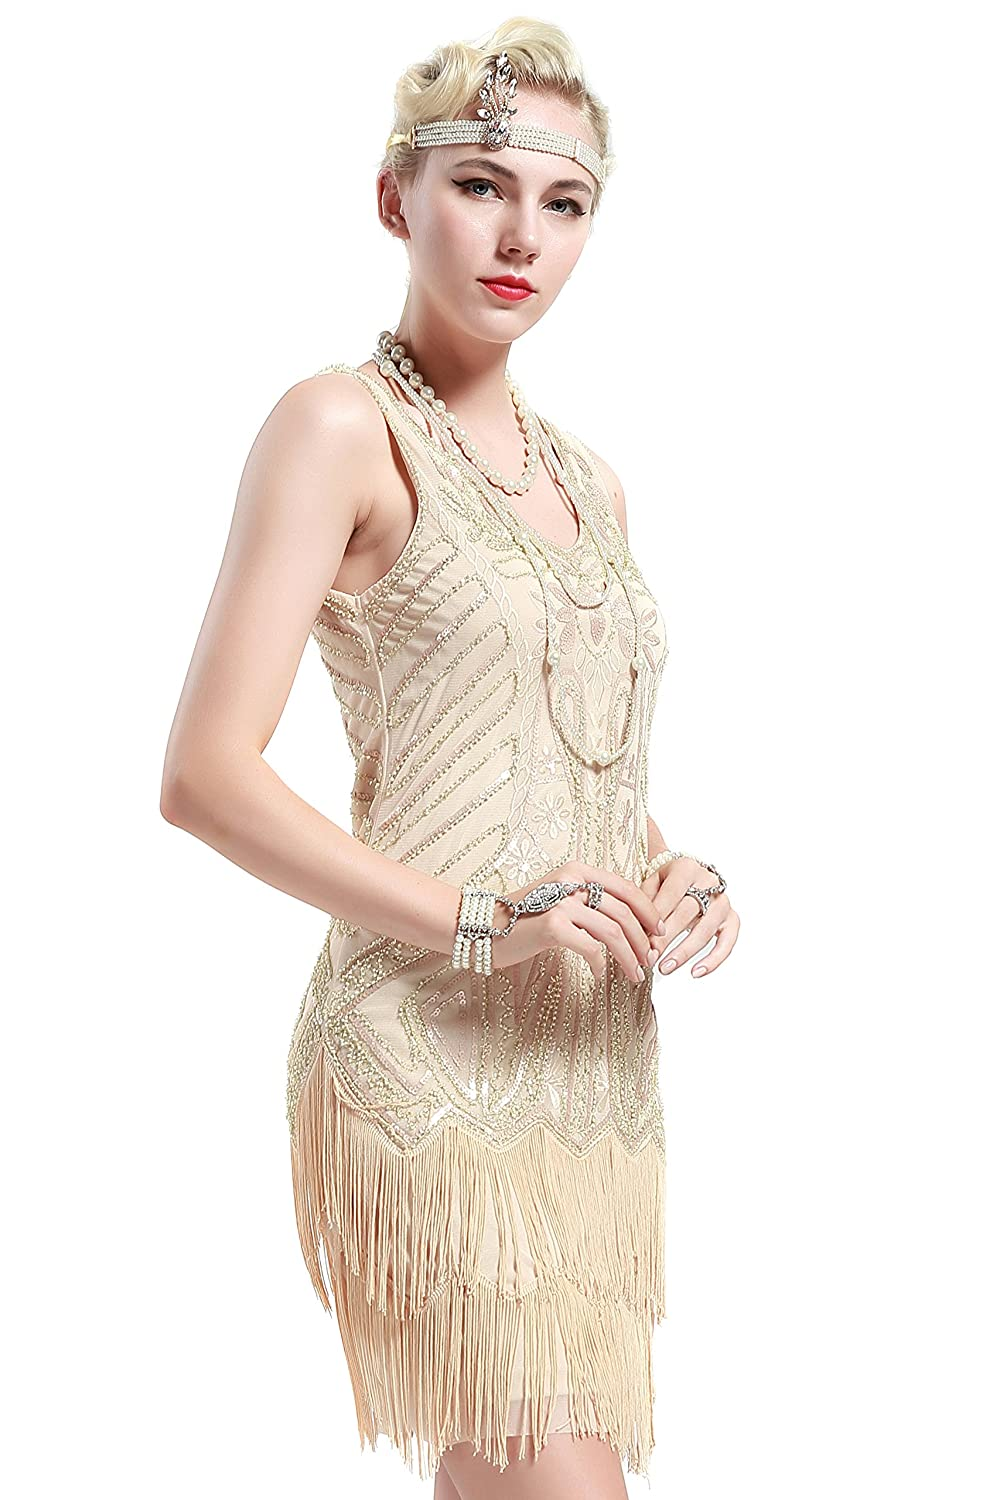 1920s Fashion & Clothing | Roaring 20s Attire Flapper Dresses 1920s V Neck Beaded Fringed Great Gatsby Dress $28.99 AT vintagedancer.com